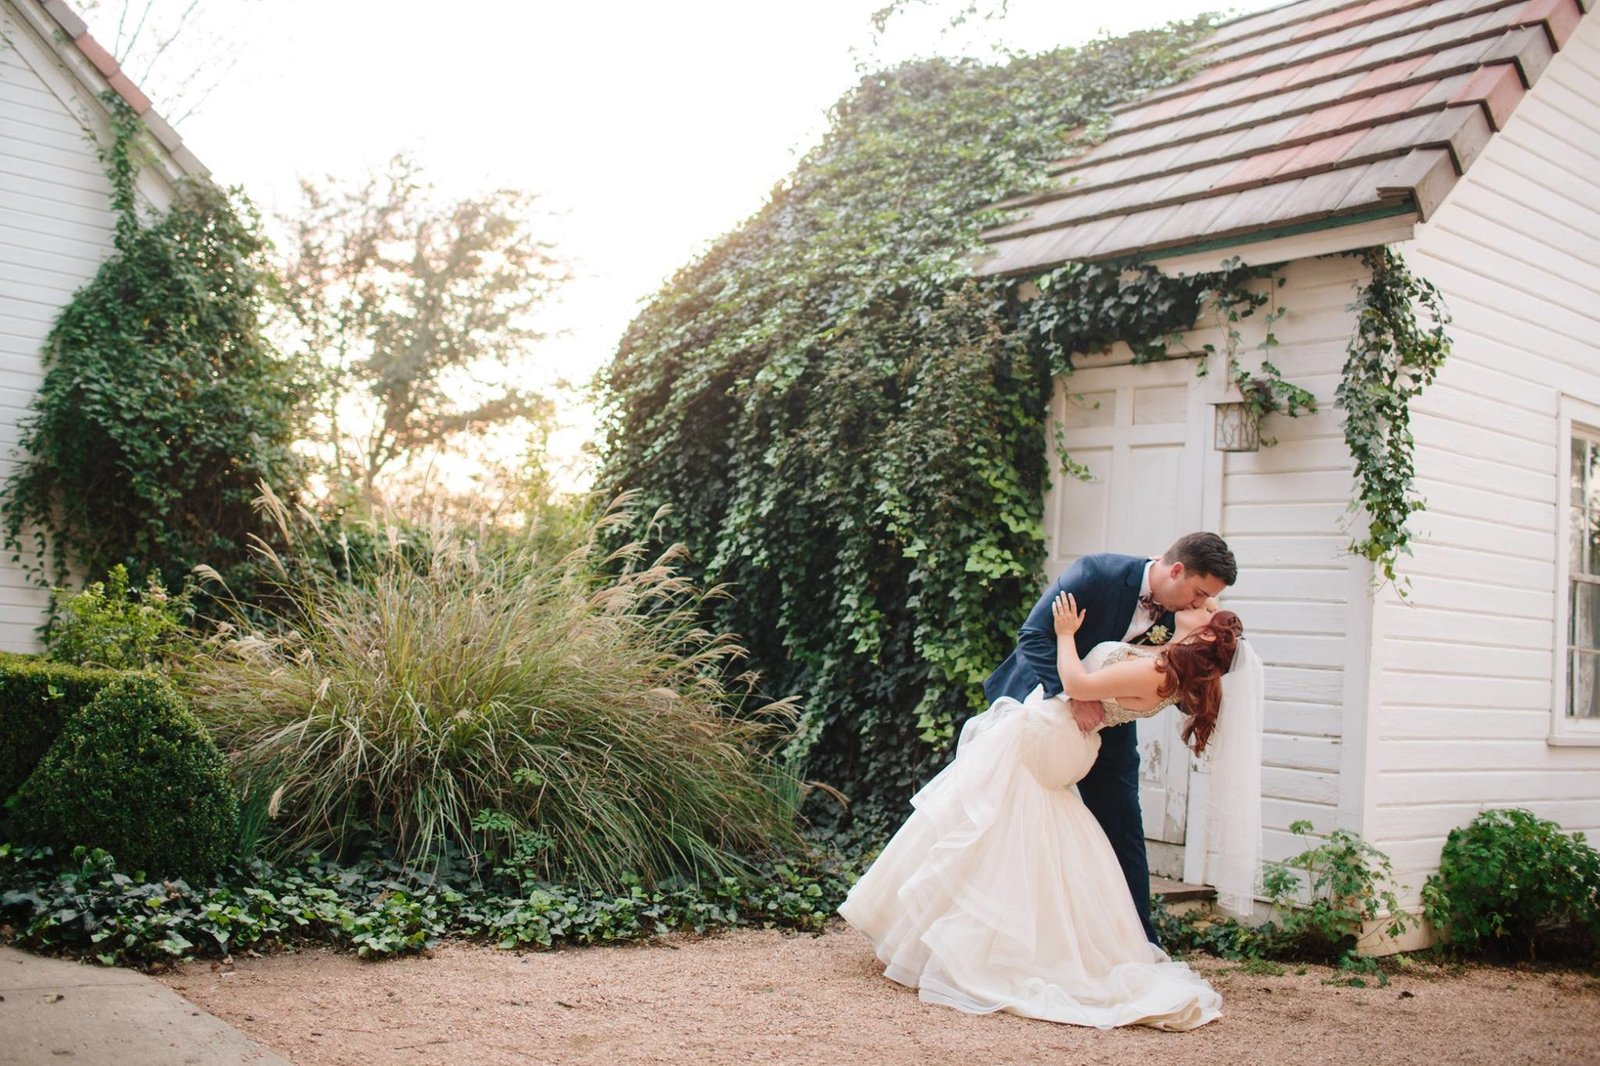 Best-Austin-Wedding-Photographer-Christina-Hastings-7